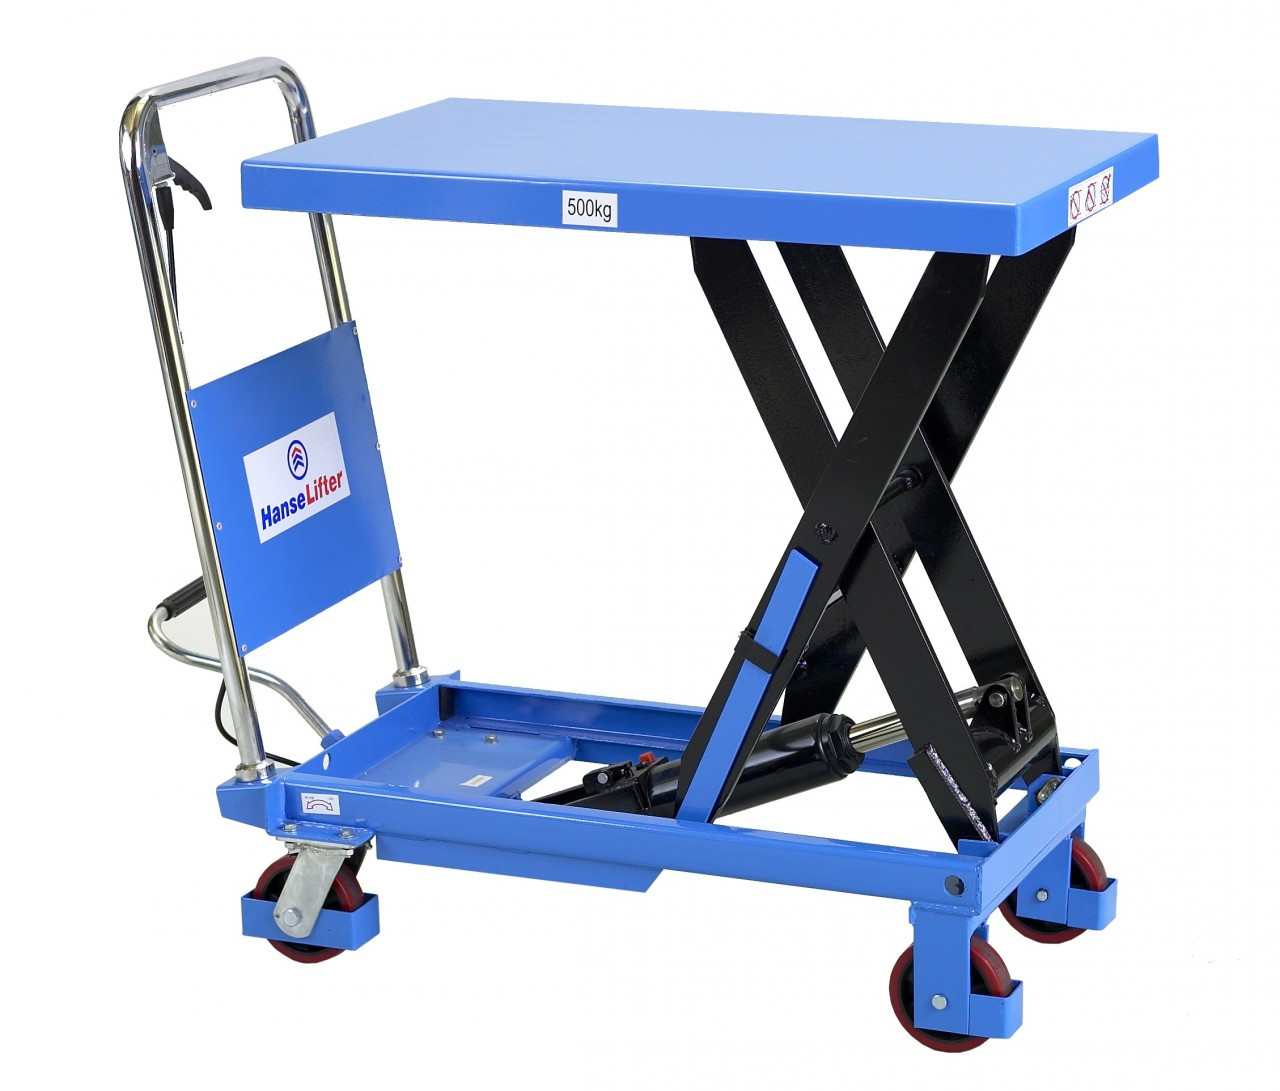 2 Ton Walk Behind Pallet Stacker Electric Forklift Price 1: Scissor Lift Table Lifting Up To 500kg